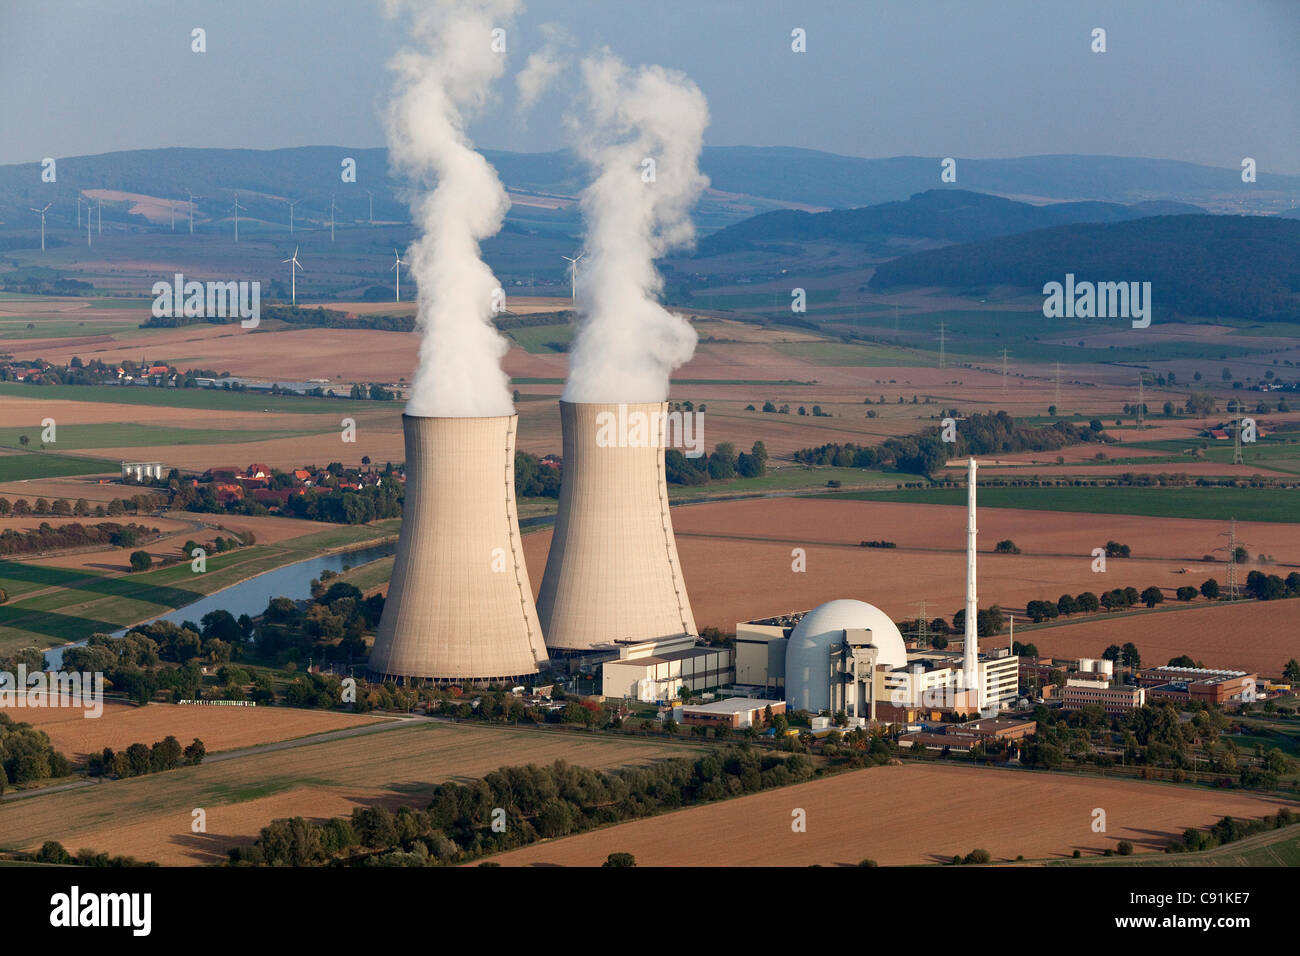 Aerial photo of the nuclear power plant Grohnde and the Weser River, Lower Saxony, Germany - Stock Image